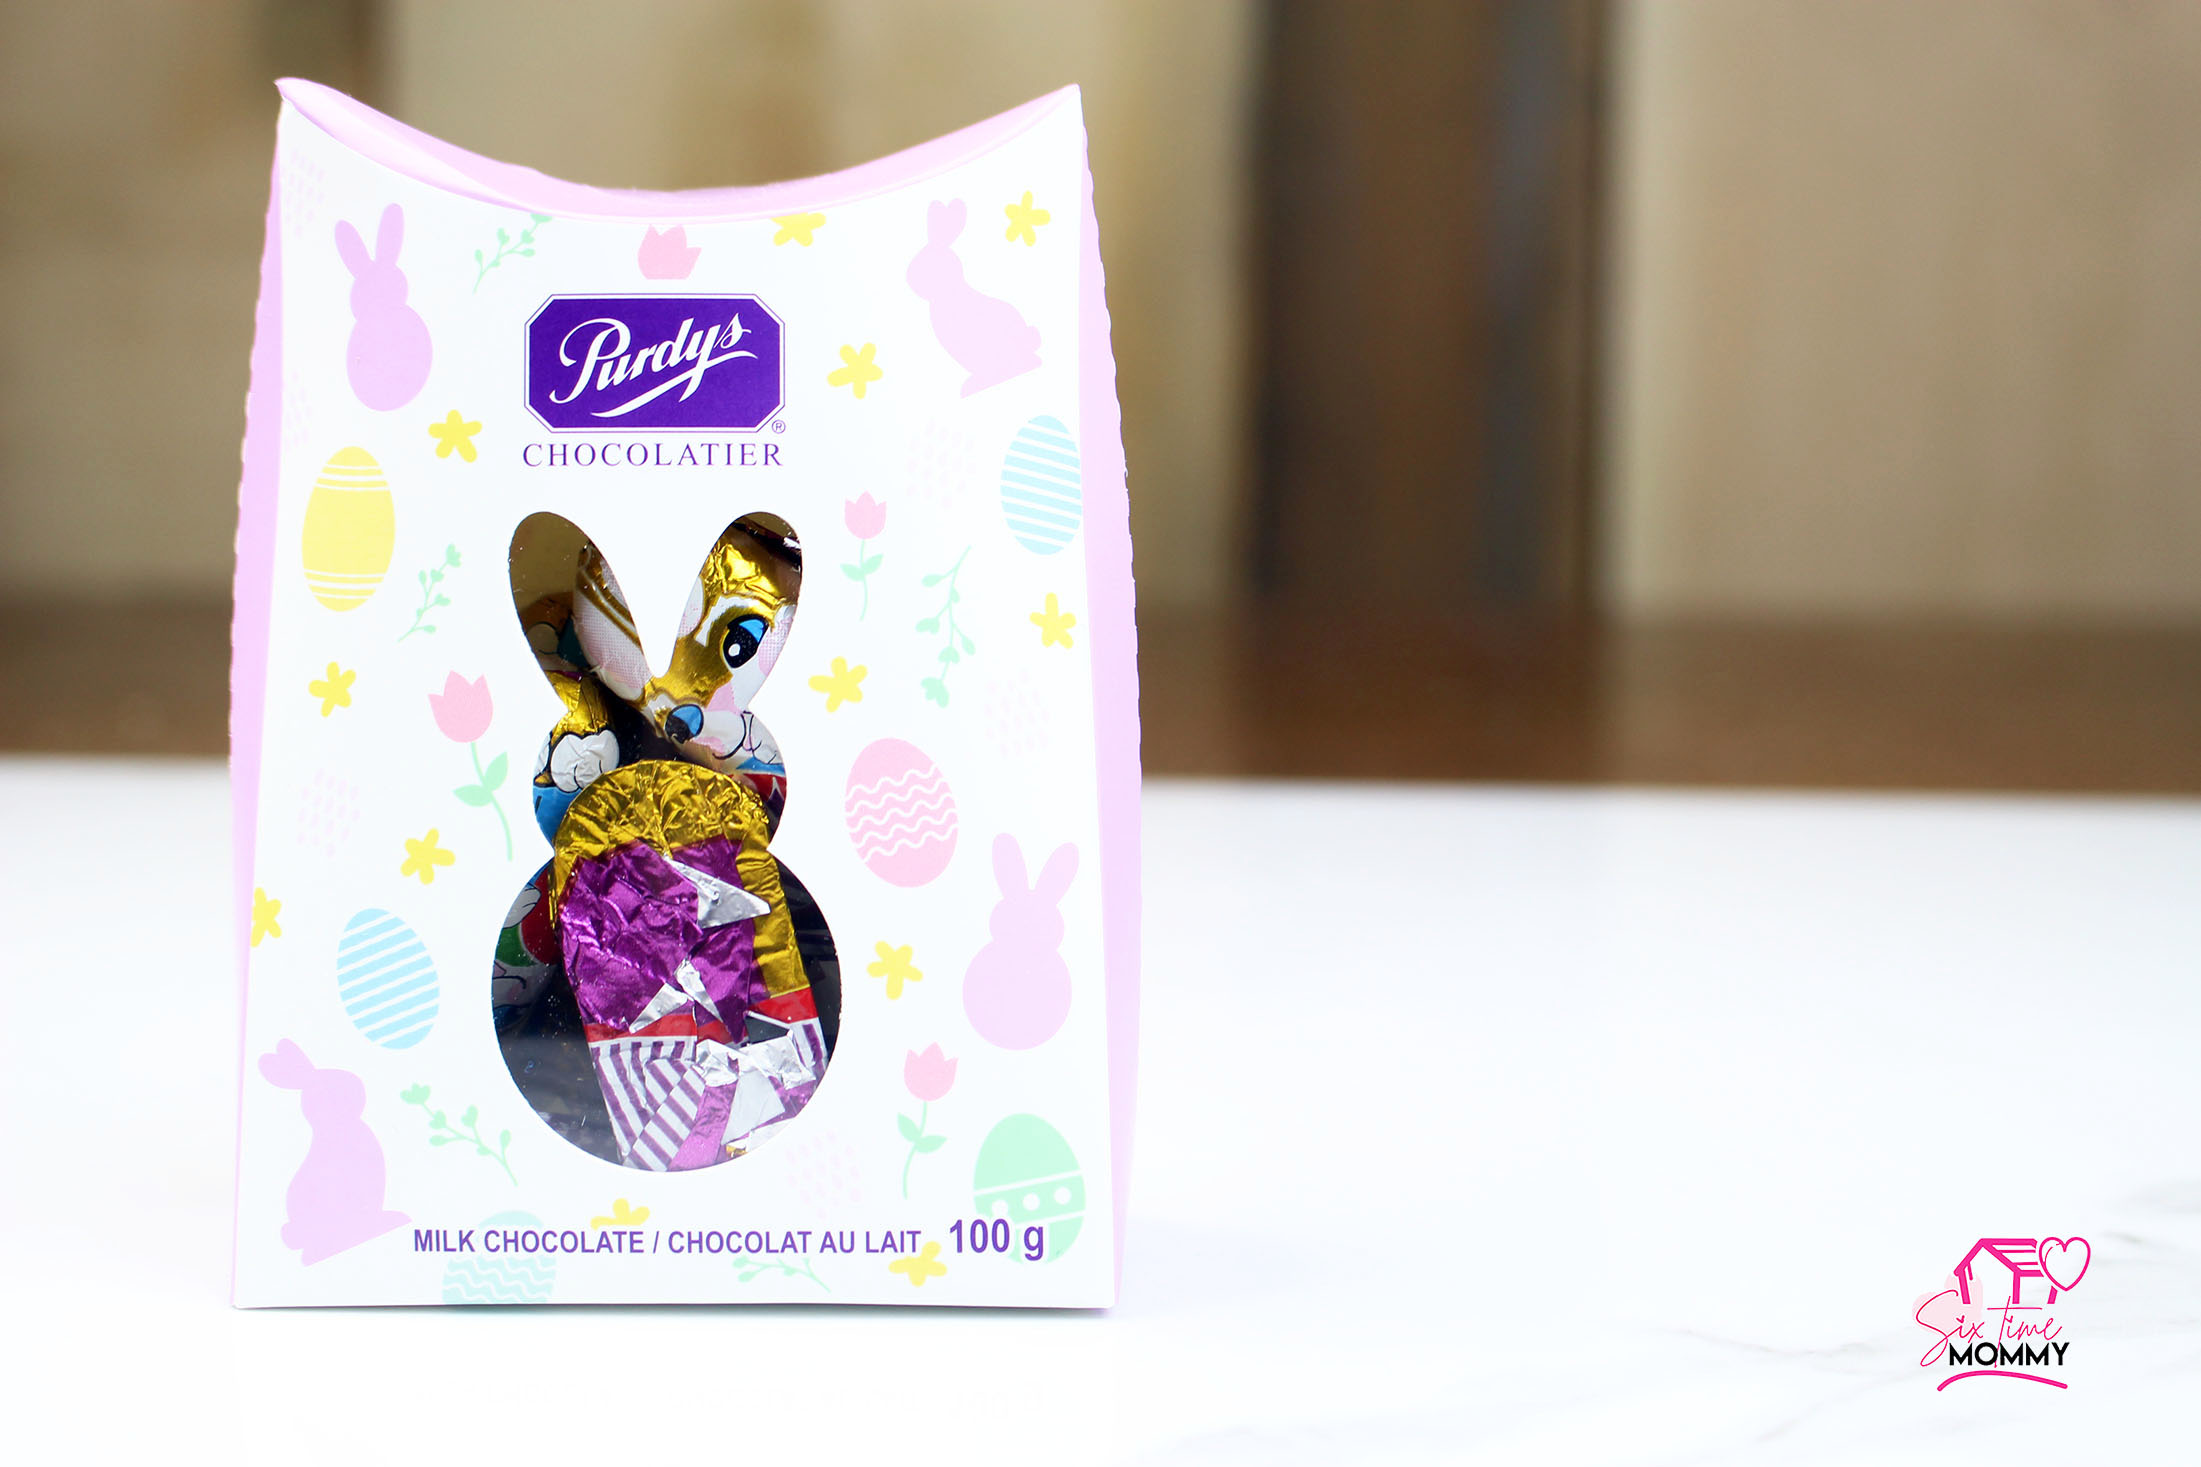 Celebrate Easter with Purdys Canada